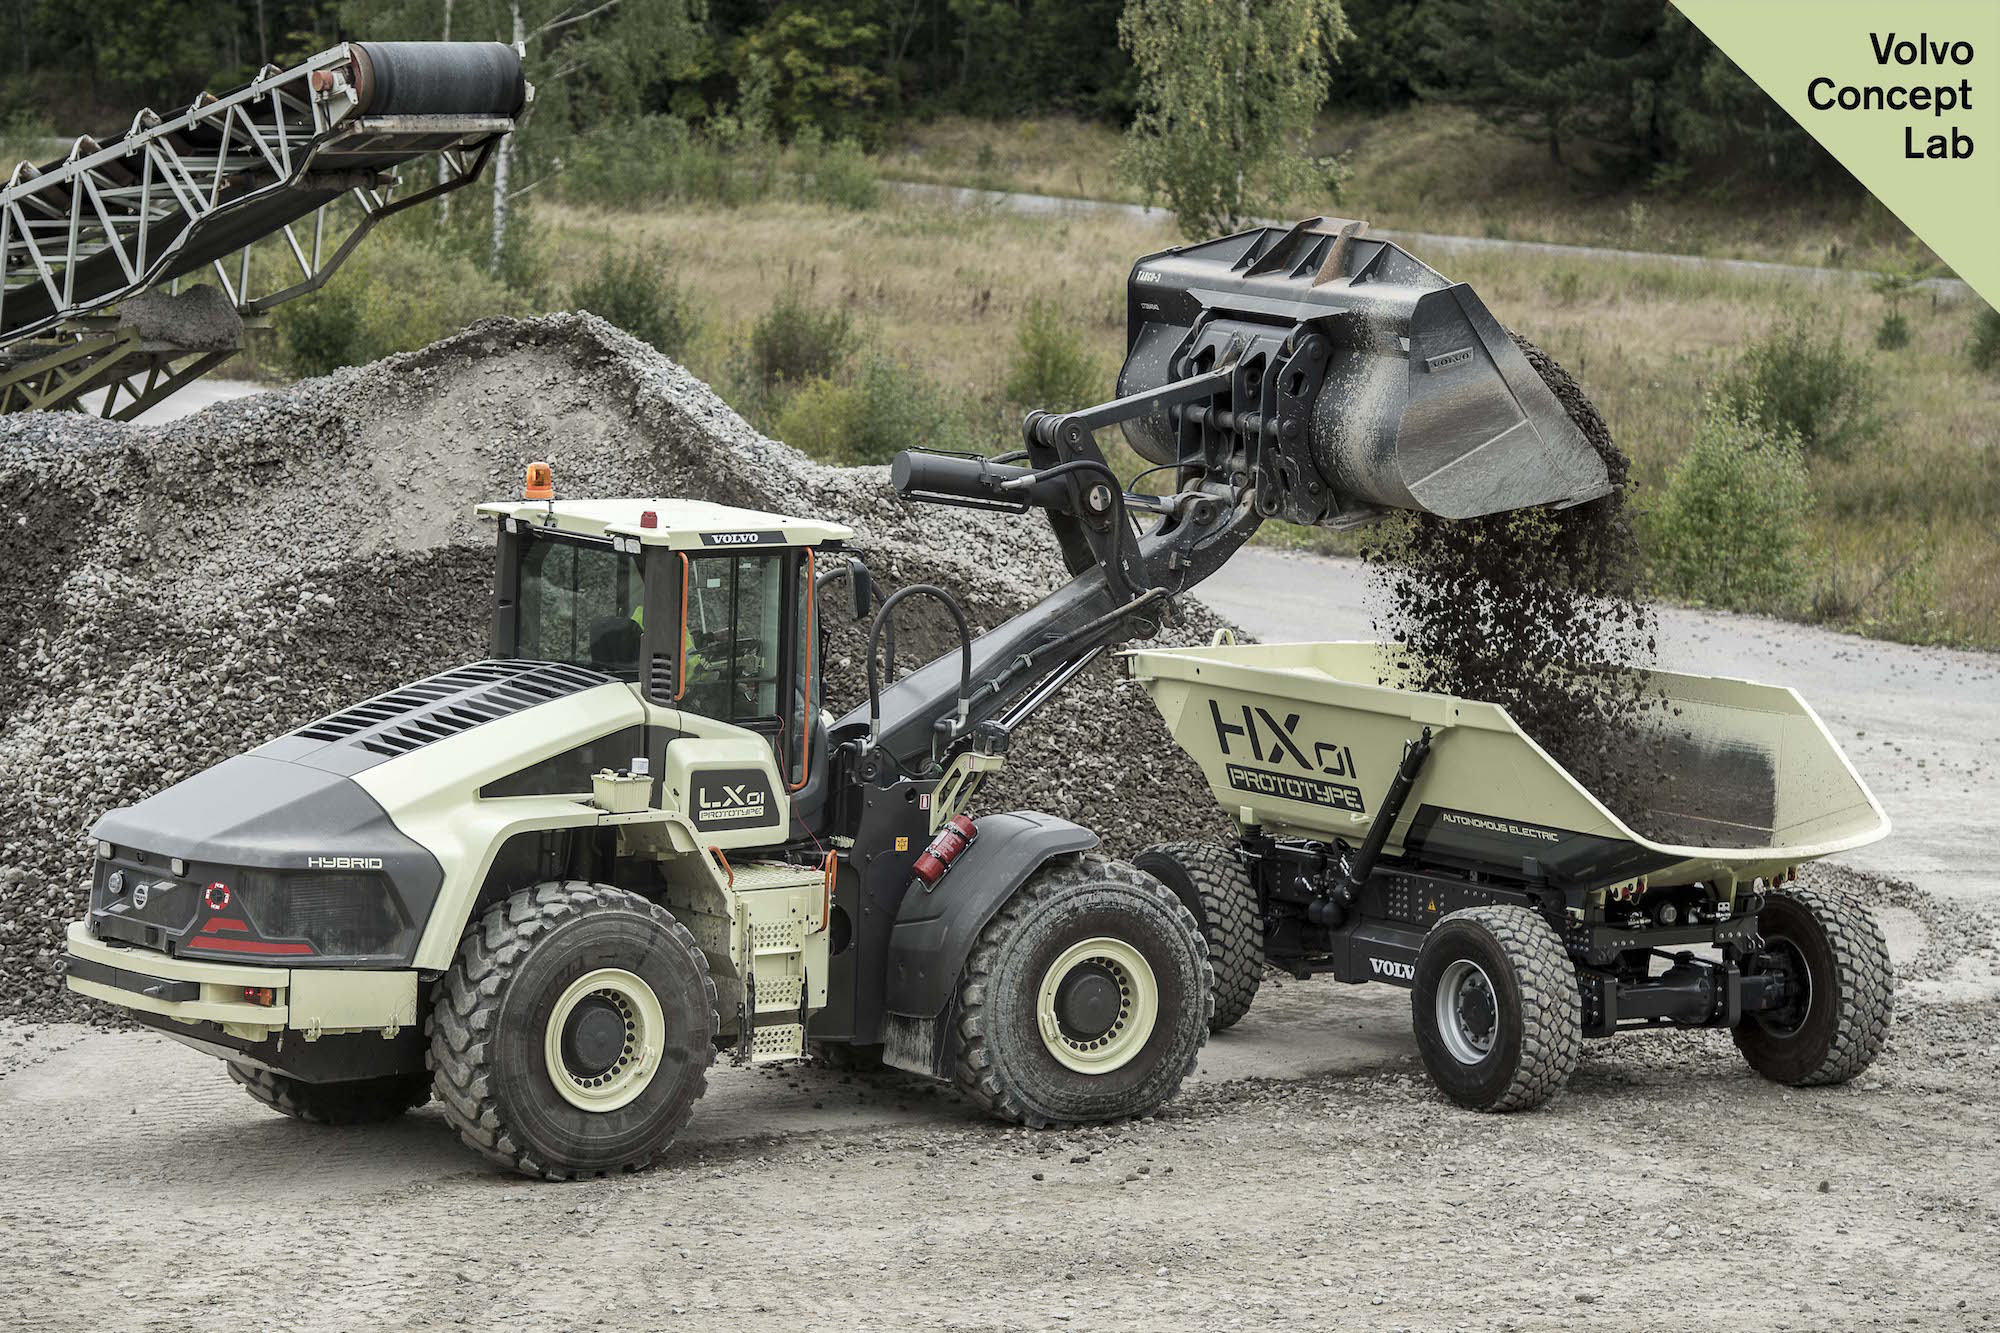 Volvo CE announces expanded test track facilities to demonstrate electric autonomous machines